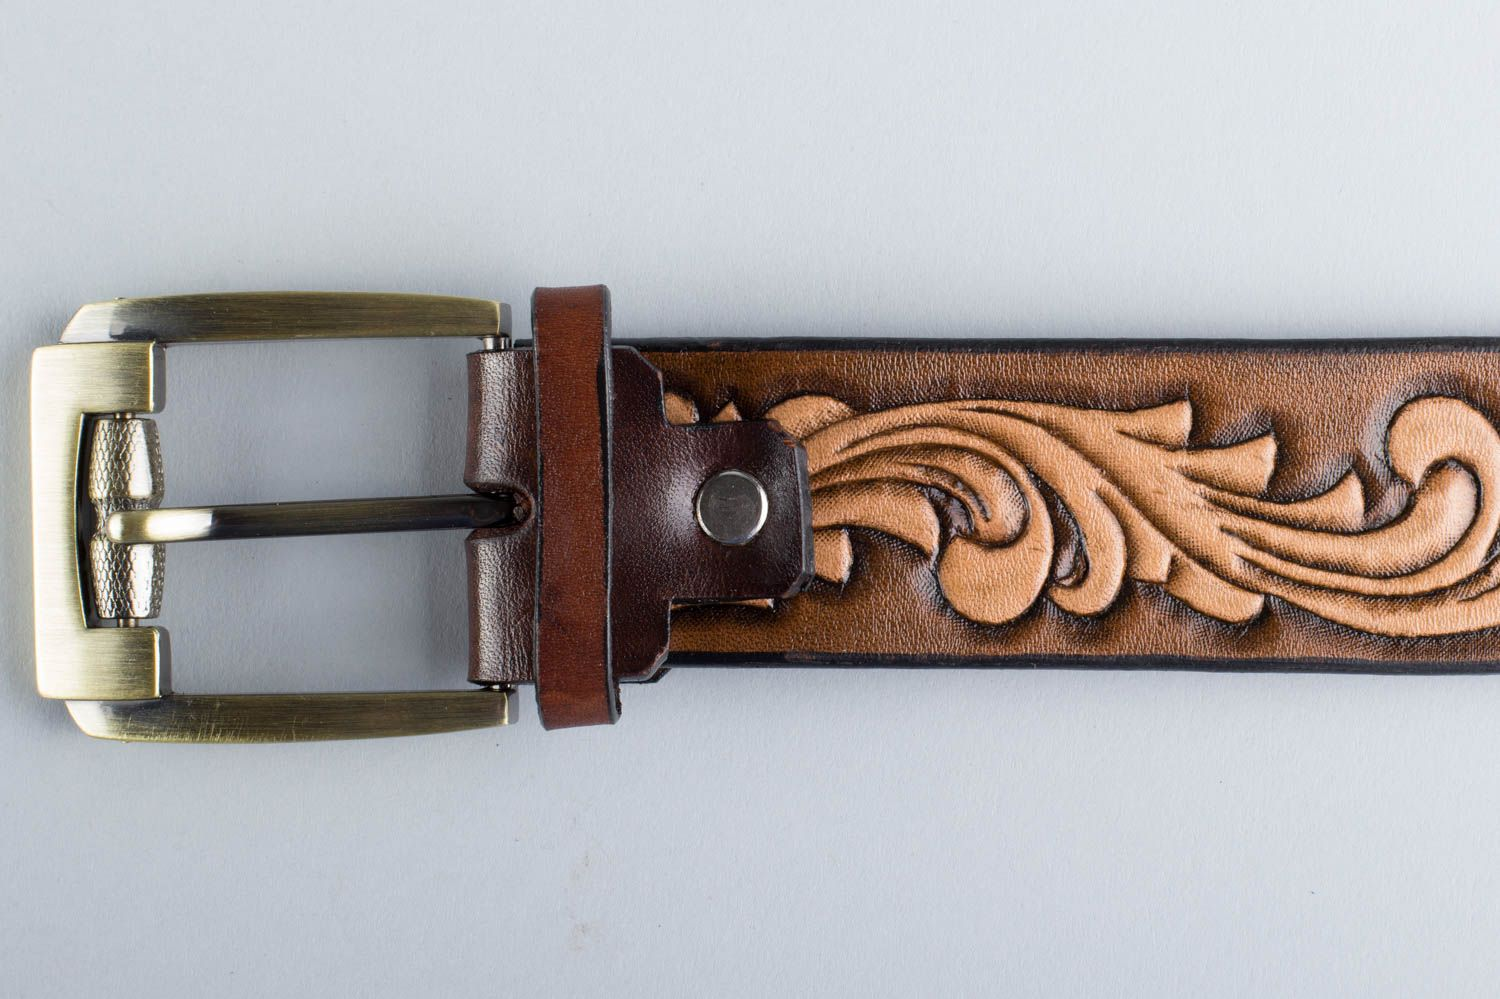 Handmade stylish unusual brown belt made of natural leather with metal buckle photo 2